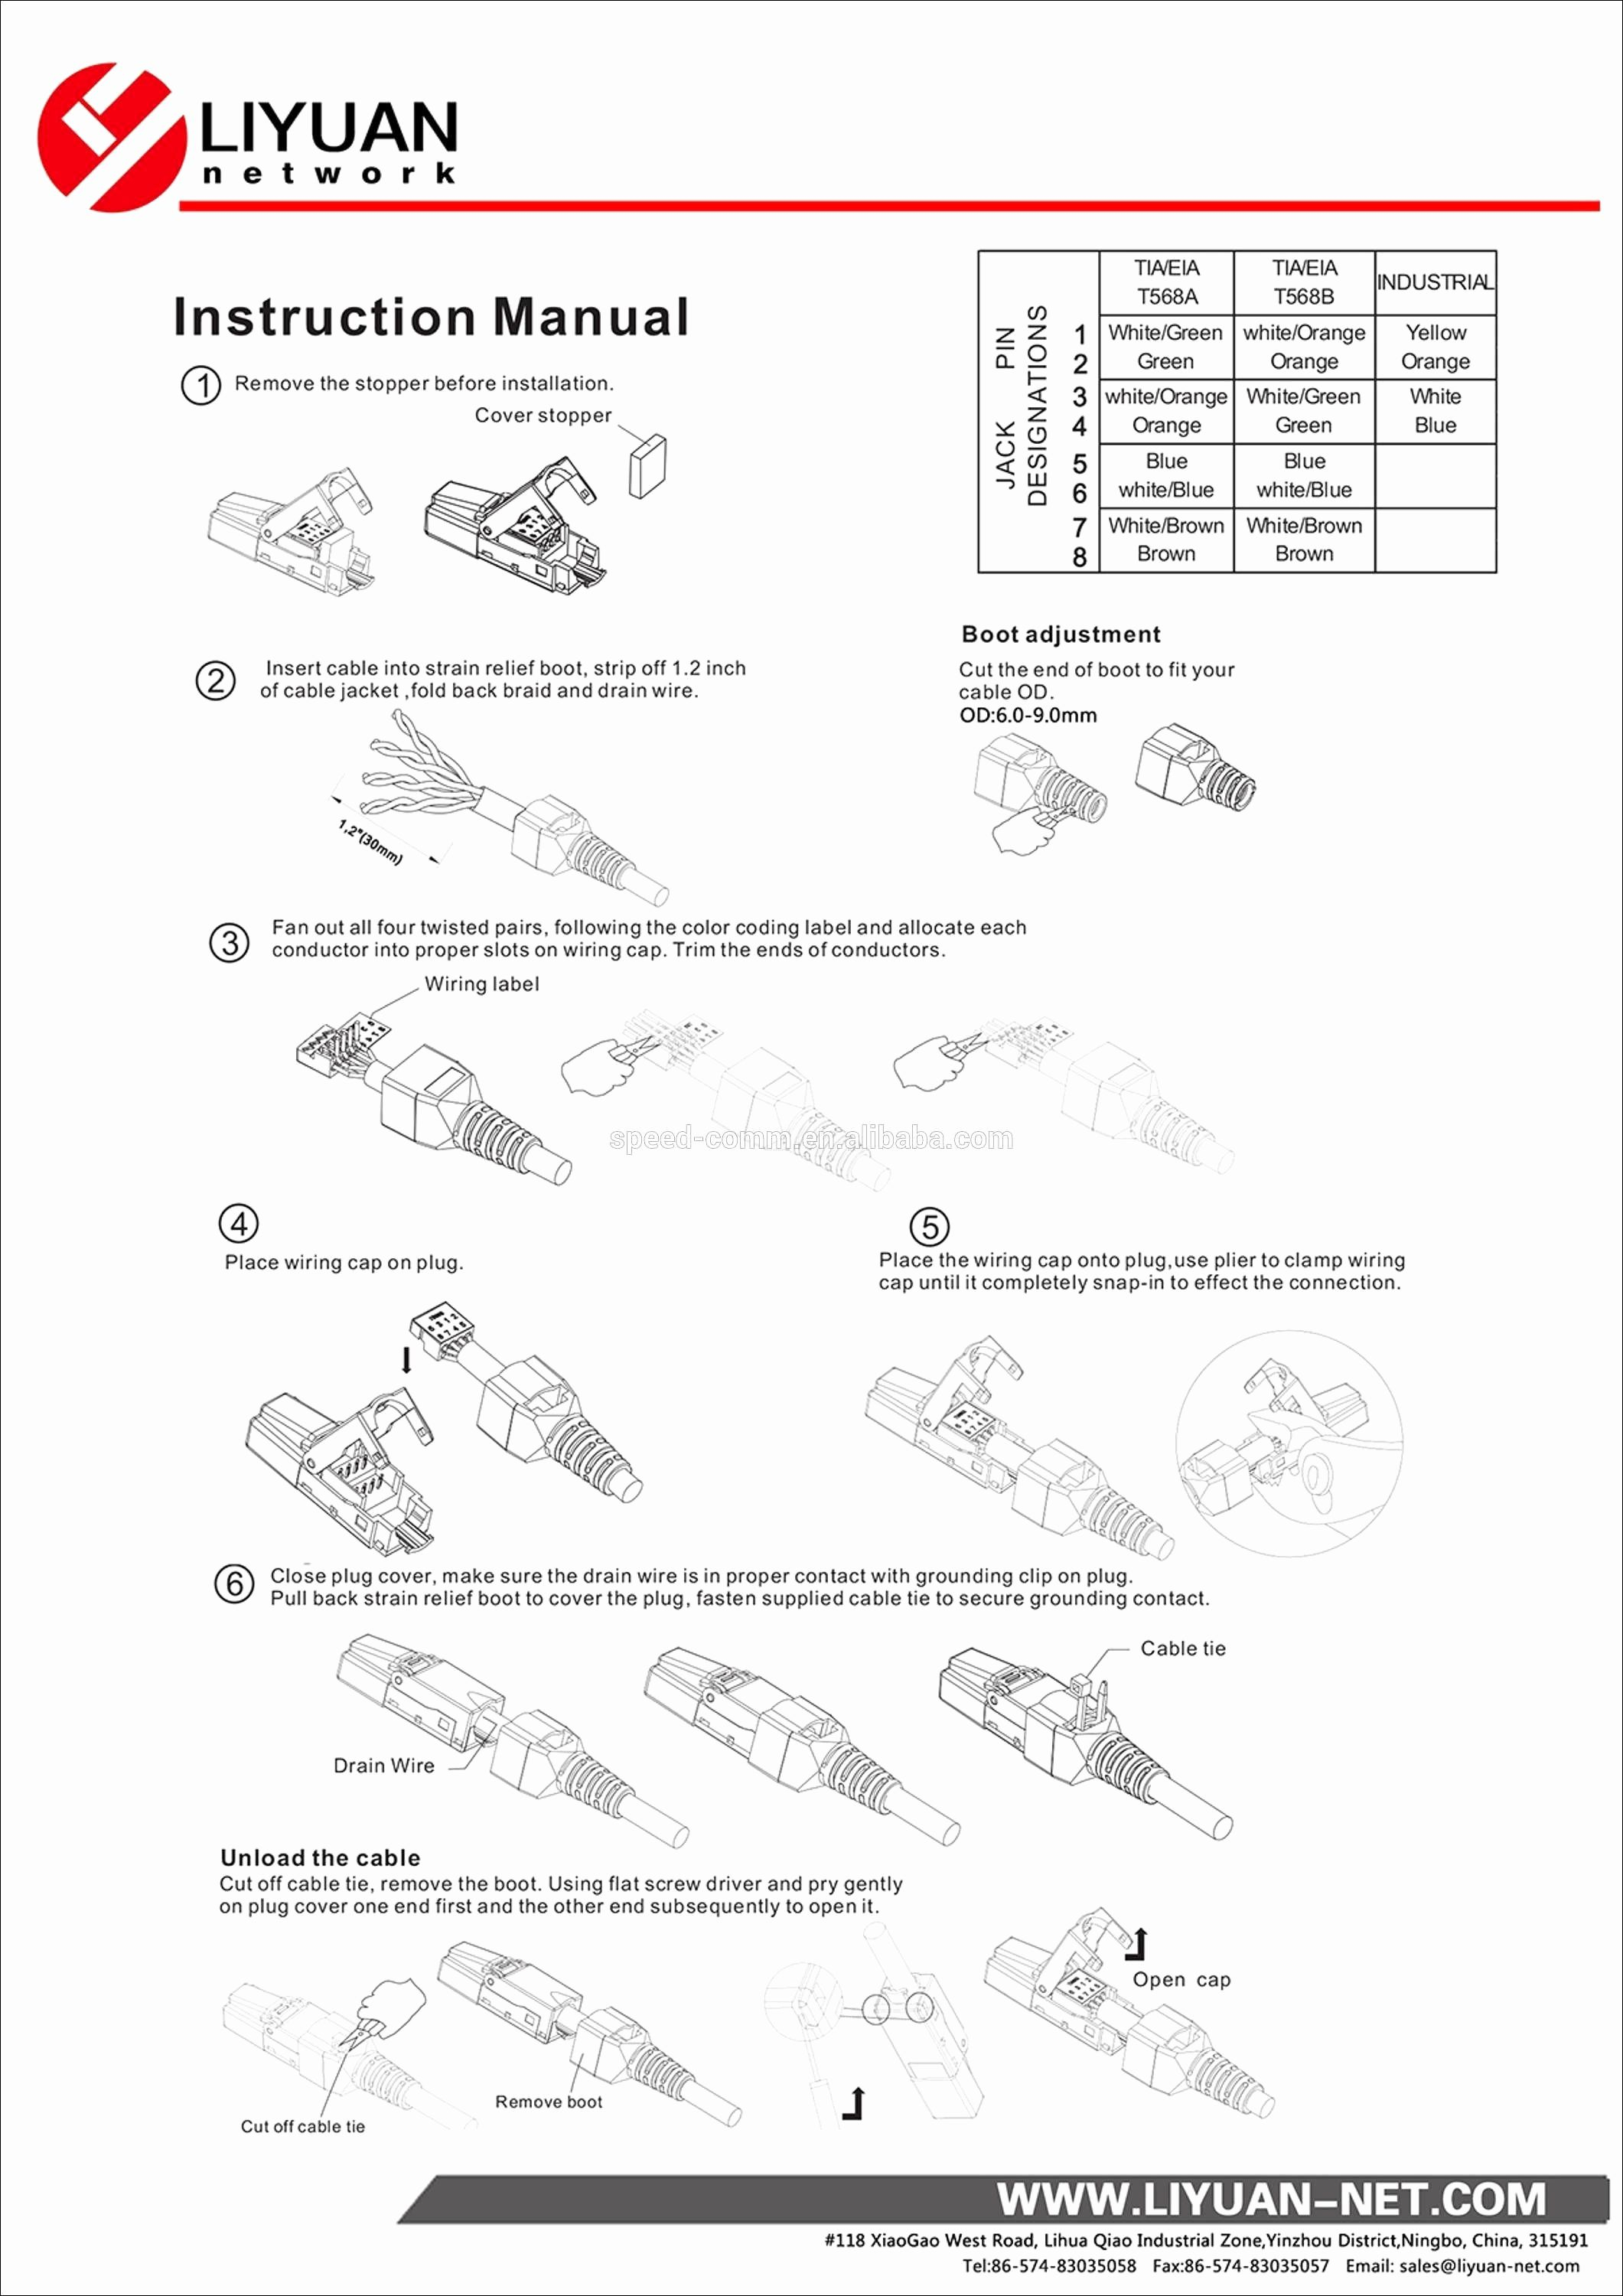 60 New Wiring Diagram For Pioneer Radio Deh-150Mp Pictures | Wsmce - Pioneer Deh-150Mp Wiring Diagram